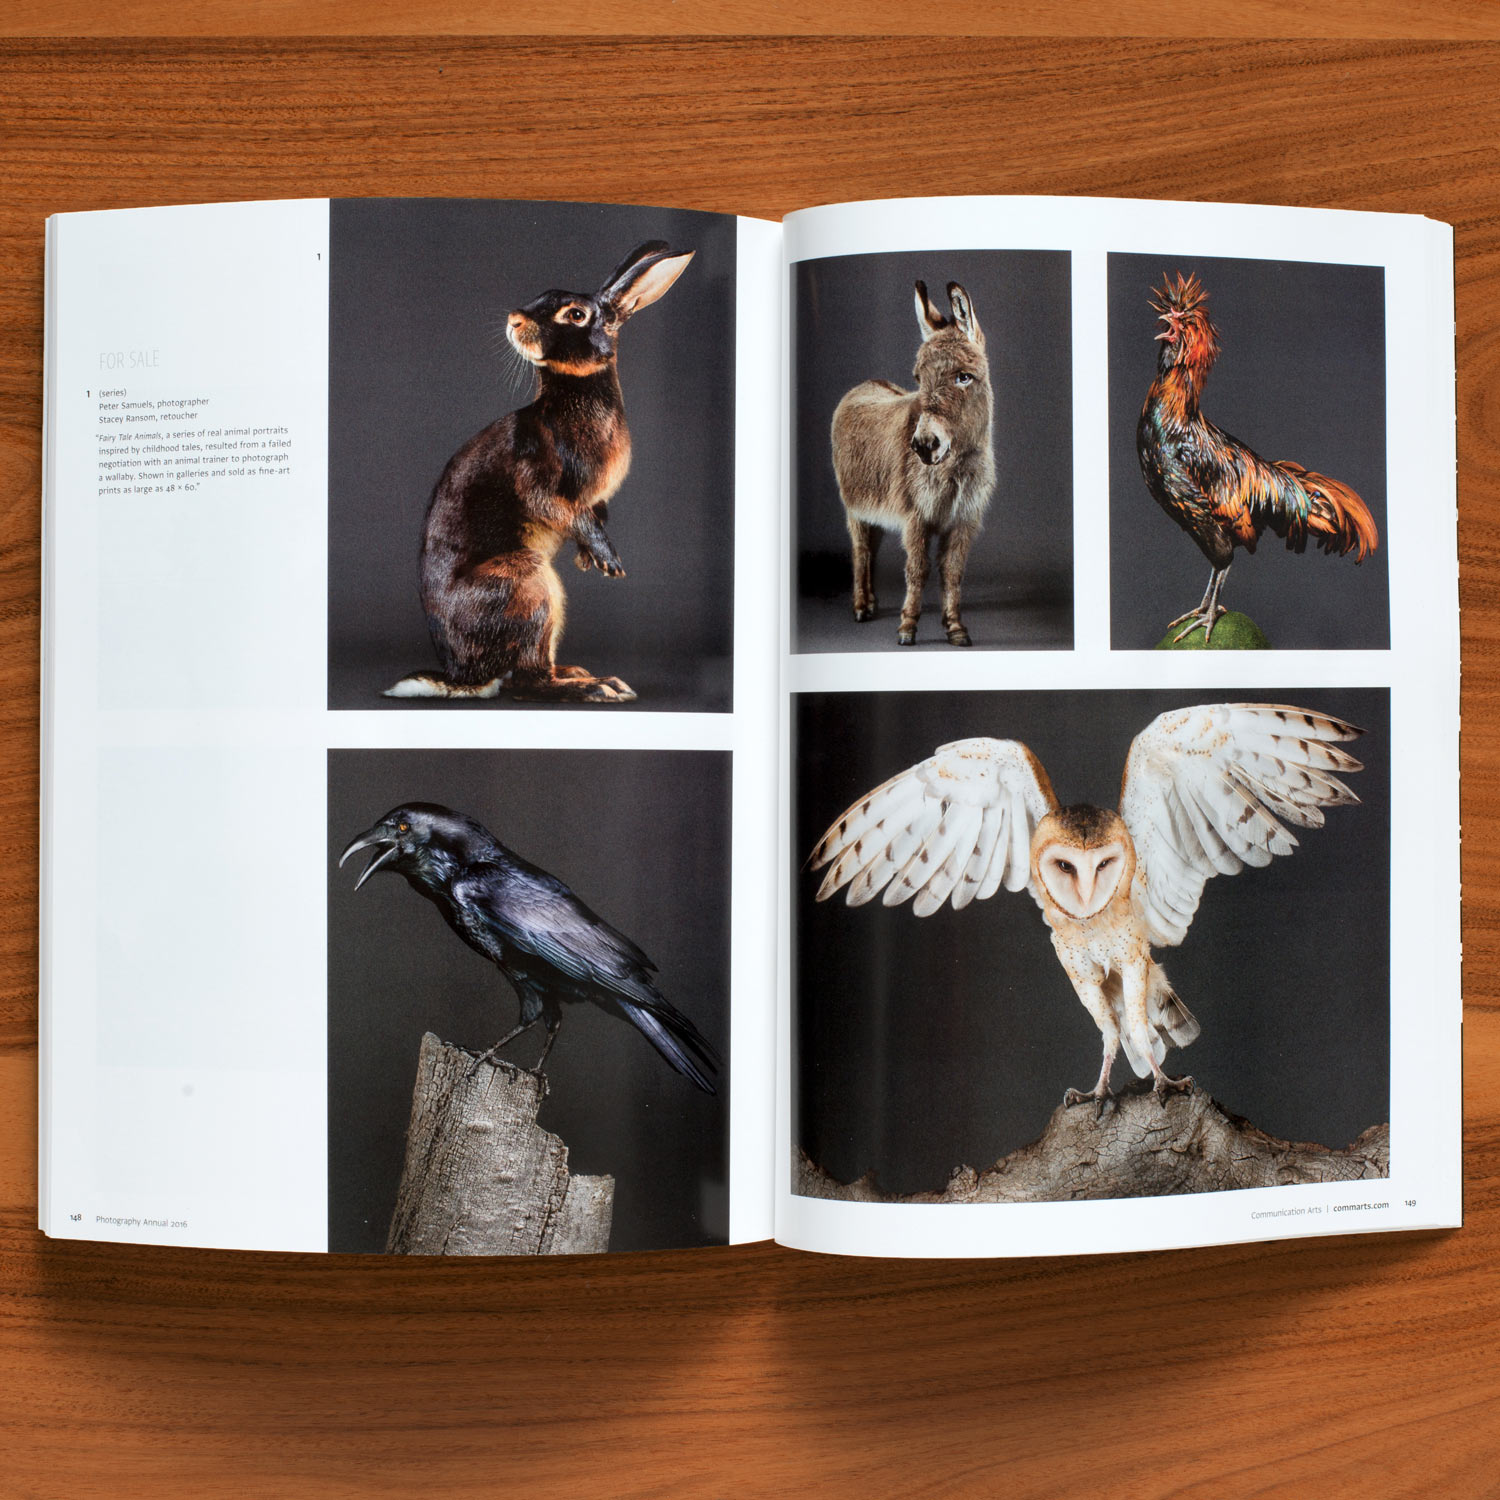 Communication arts photography annual accepts my fine art photography fairy tale animal series including the donkey, barn owl, raven and rooster.